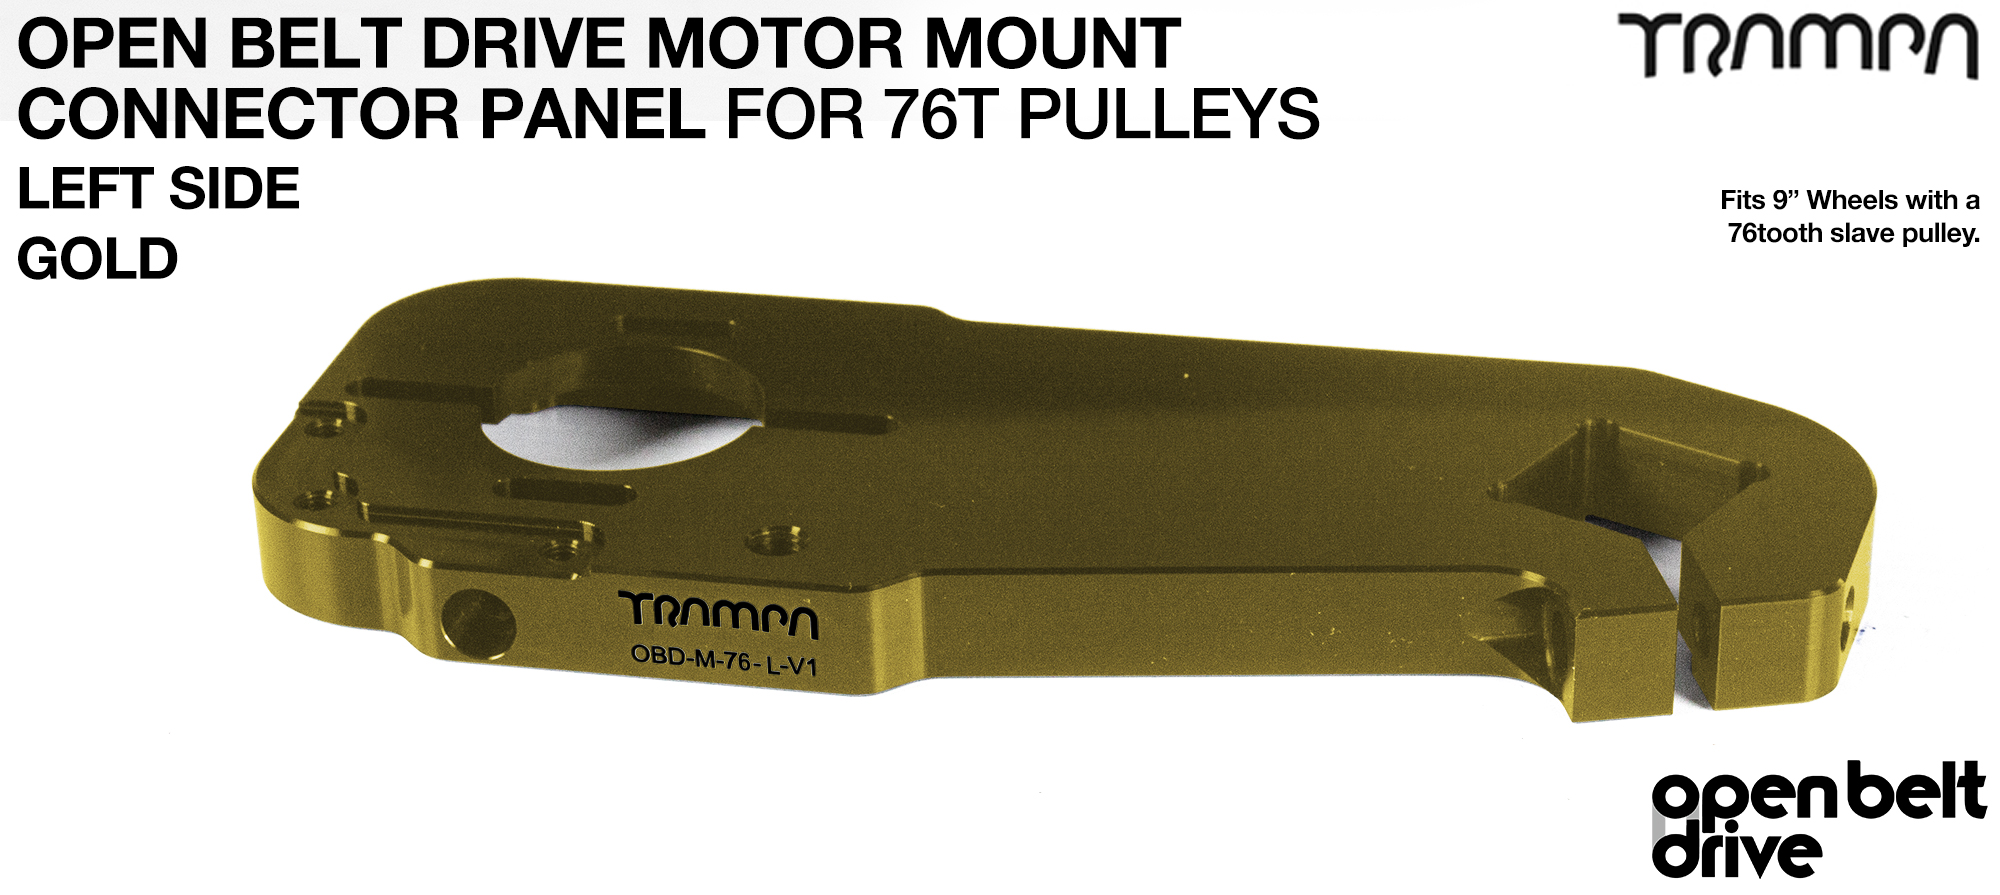 OBD Motor Mount Connector Panel for 76 tooth pulleys - REGULAR - GOLD